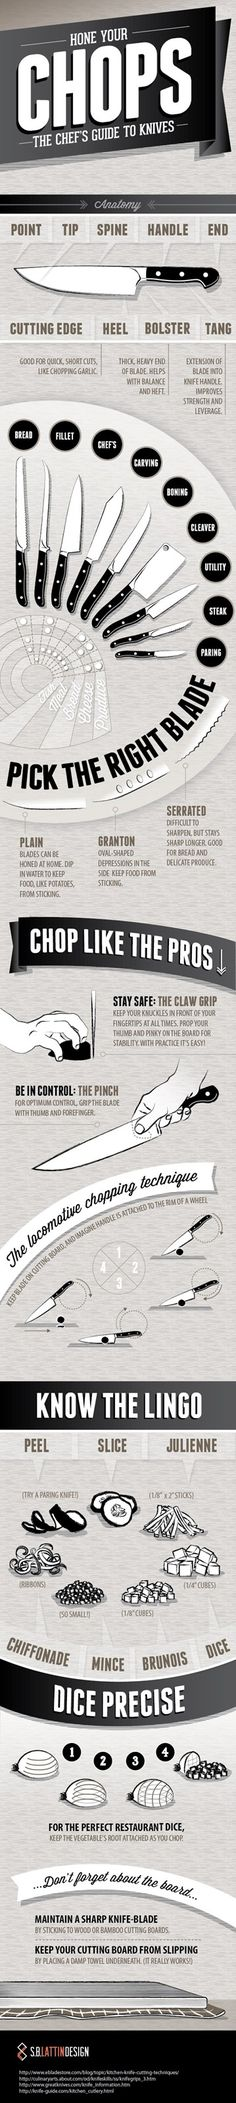 Knife Guide of the Day - the chef's guide to knives - the how-to guide to using a knife.